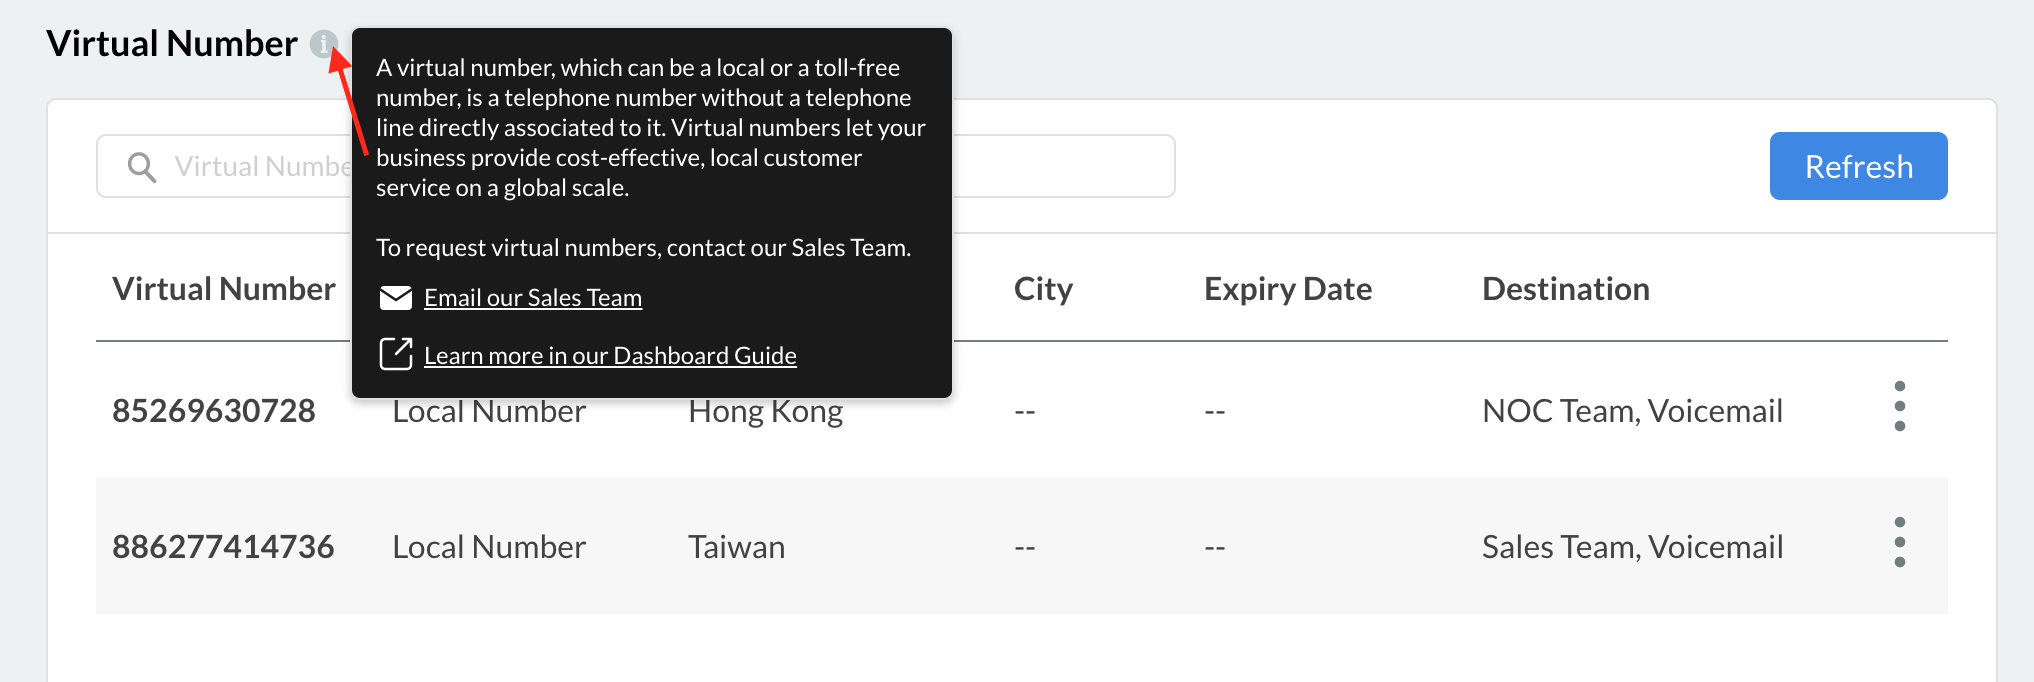 Virtual Number page